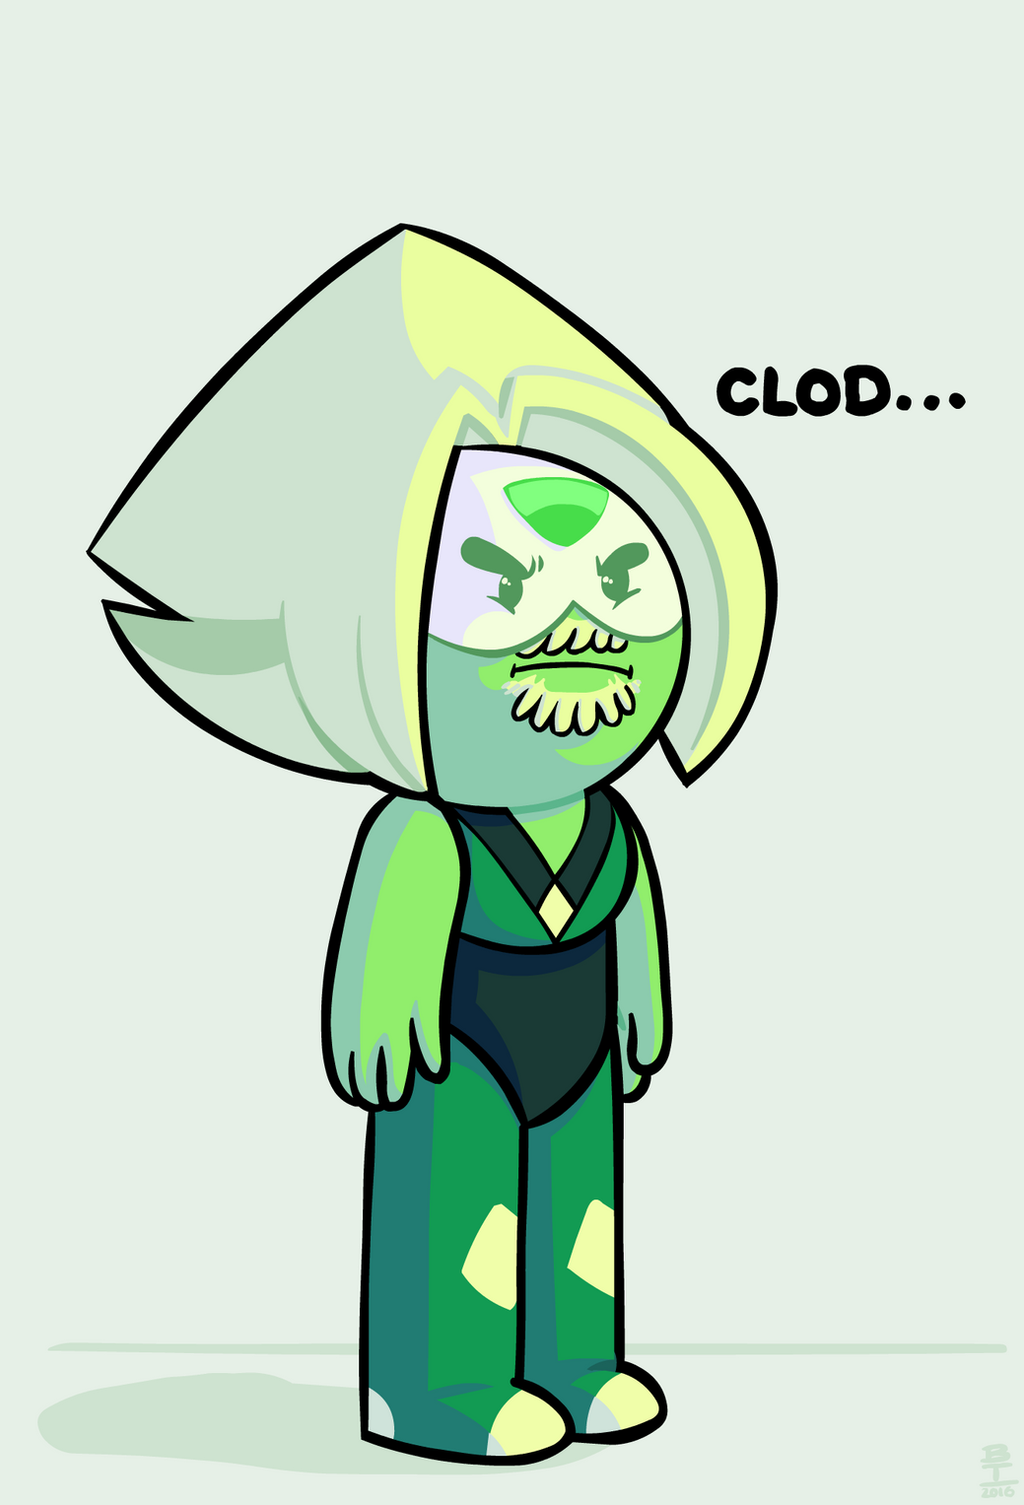 CLOD... by Wazzaldorp